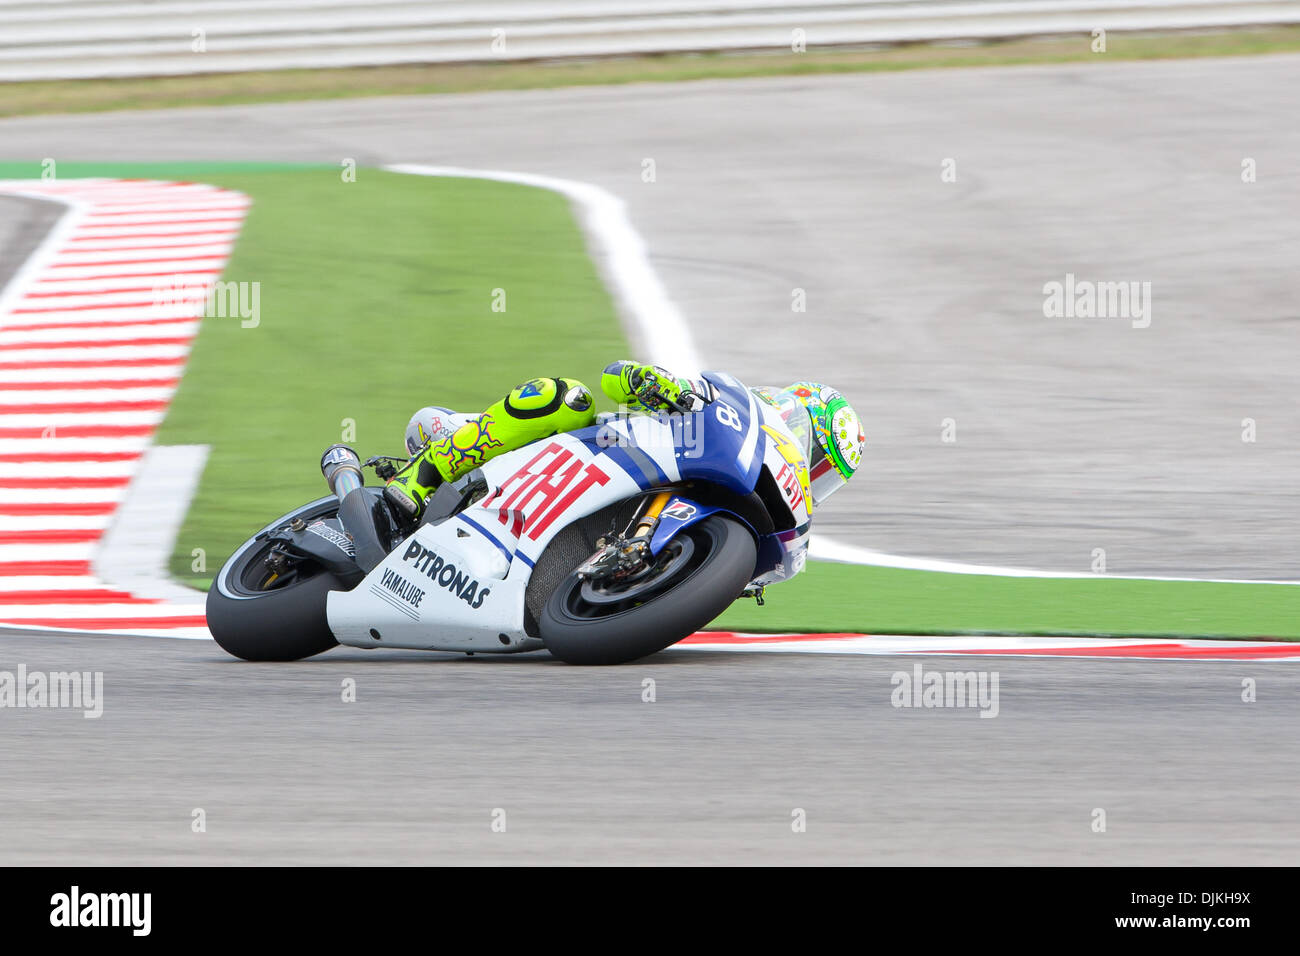 Sep. 07, 2010 - Misano Adriatico, Italy - Yamaha rider Valentino Rossi (#46) finished the race at the 3rd place the San Marino GP in Misano Adriatico, Italy. For Rossi is the second podium after recovering from the incident at Mugello circuit. (Credit Image: © Andrea Ranalli/Southcreek Global/ZUMApress.com) - Stock Image